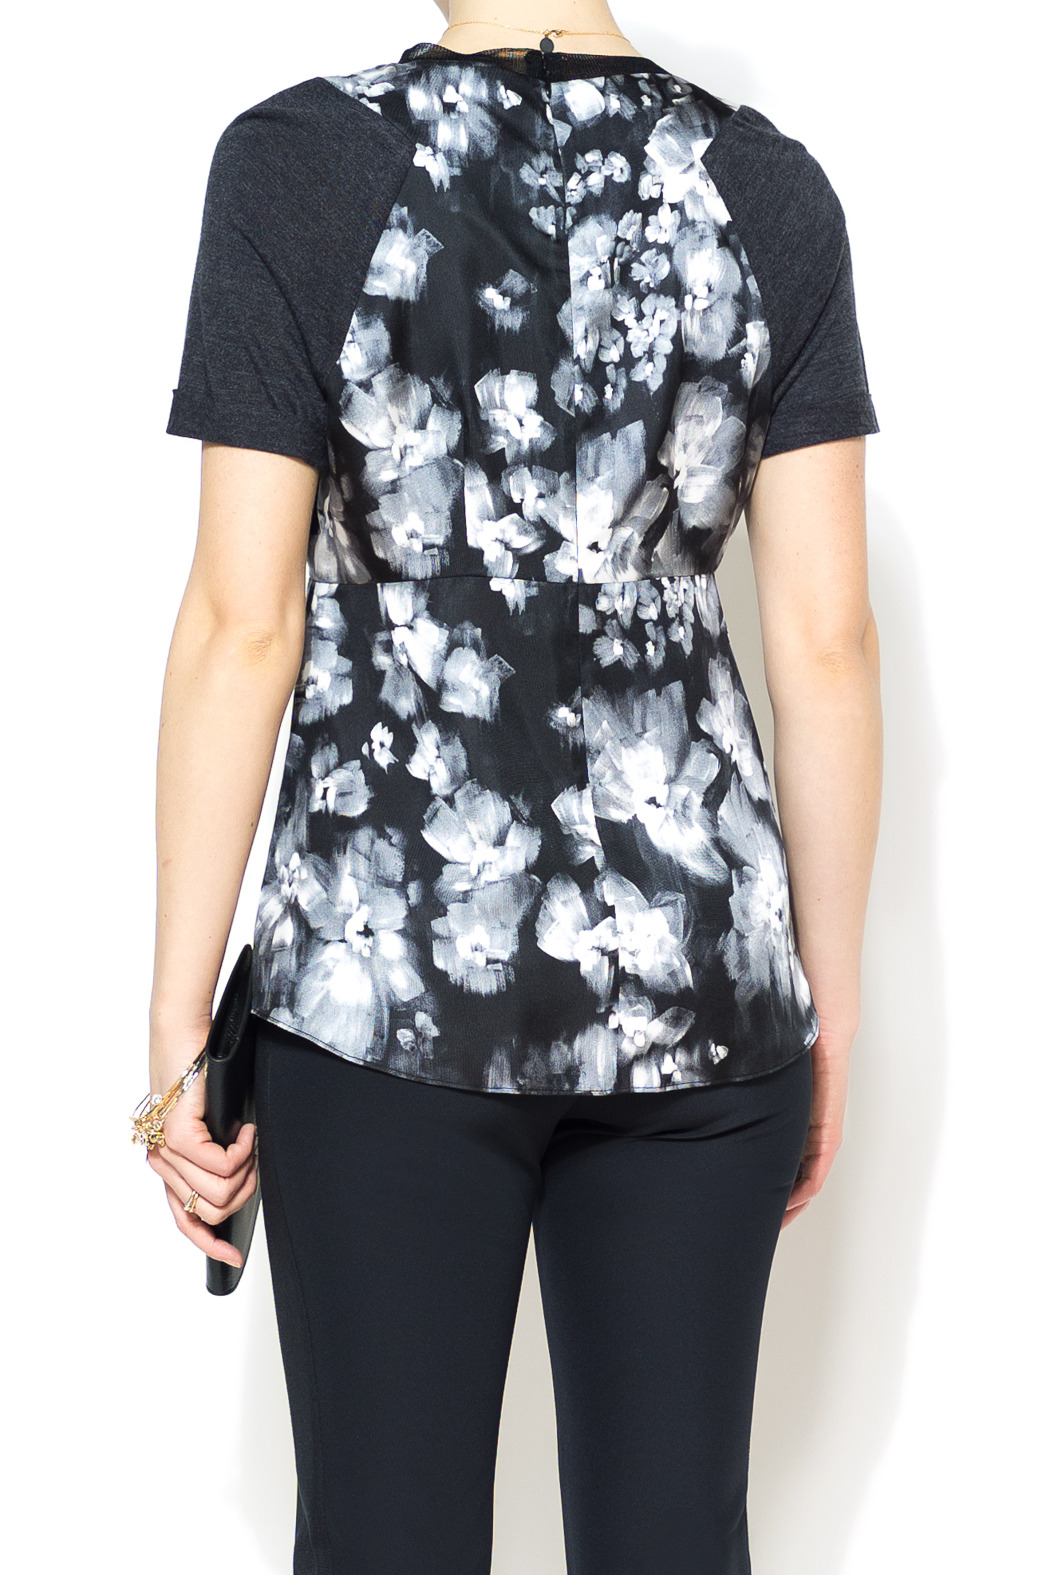 Rebecca Taylor Ghost Flower Top - Back Cropped Image